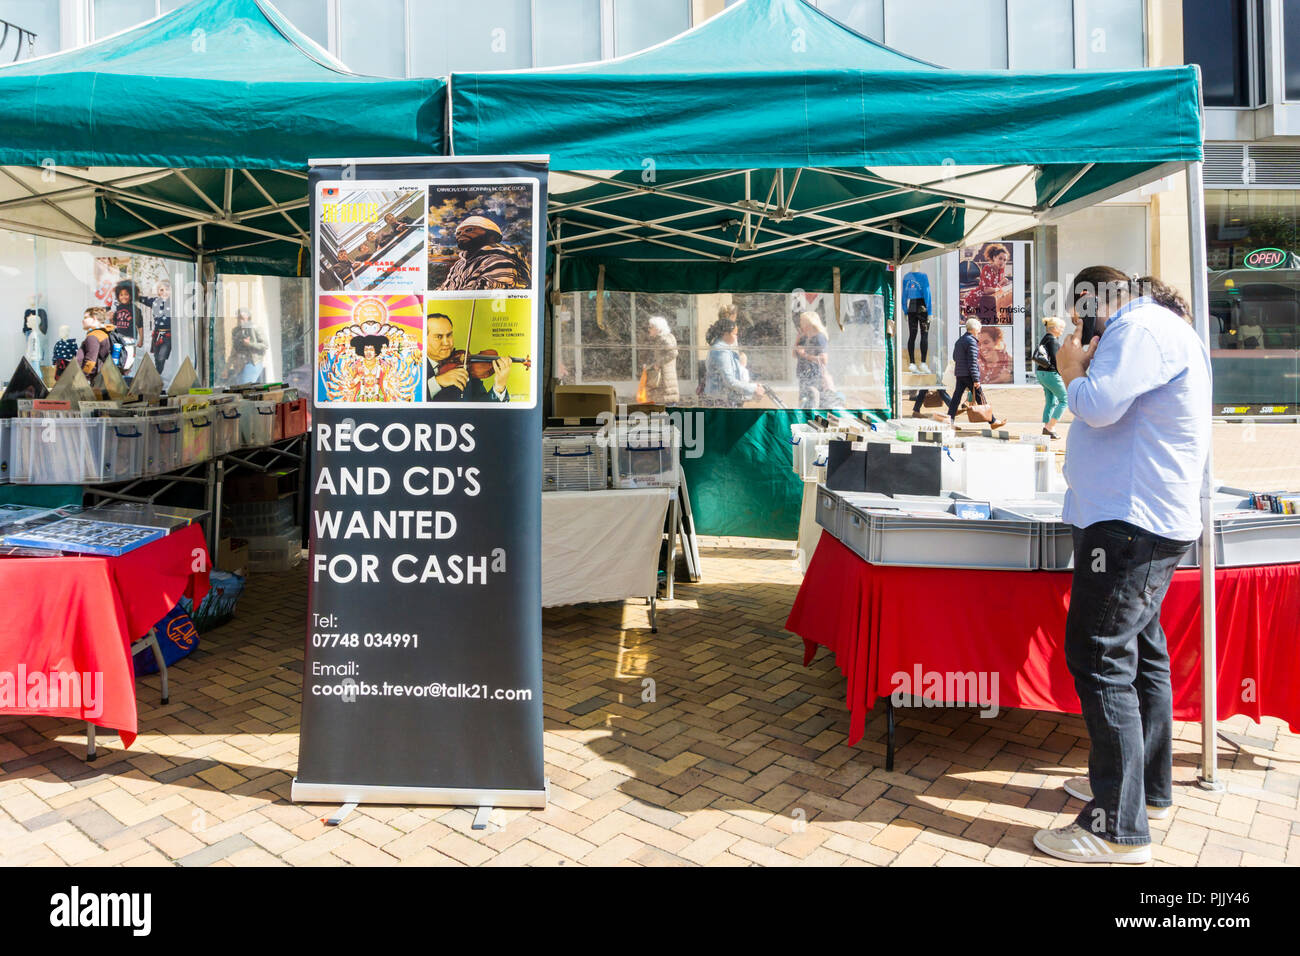 A market stall in Bromley High Street buys and sells used vinyl records and CDs. - Stock Image